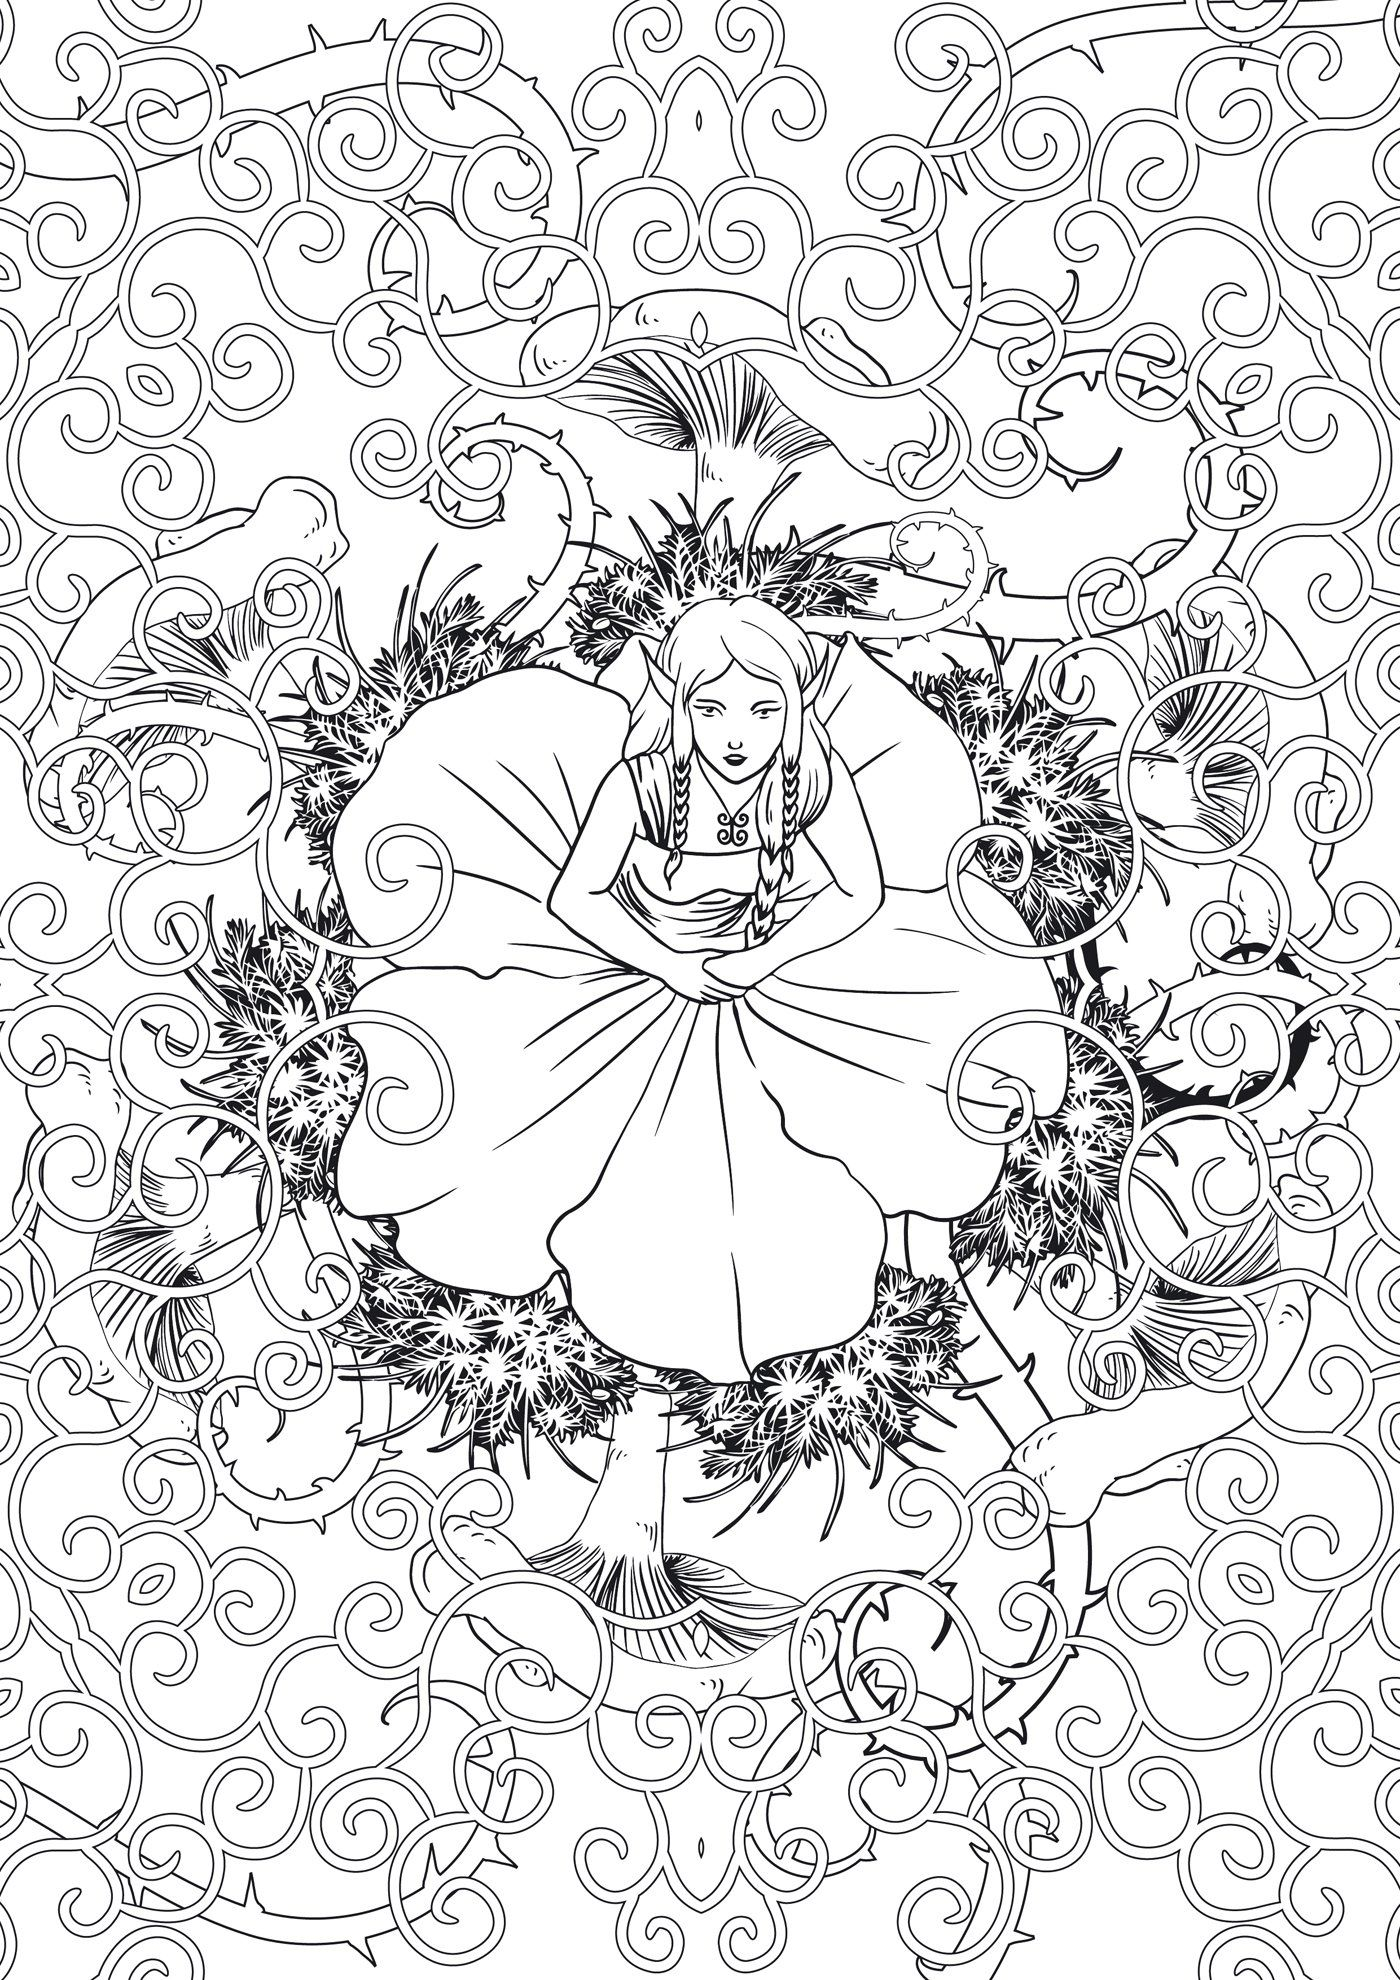 Pin on Adult Coloring Line Art